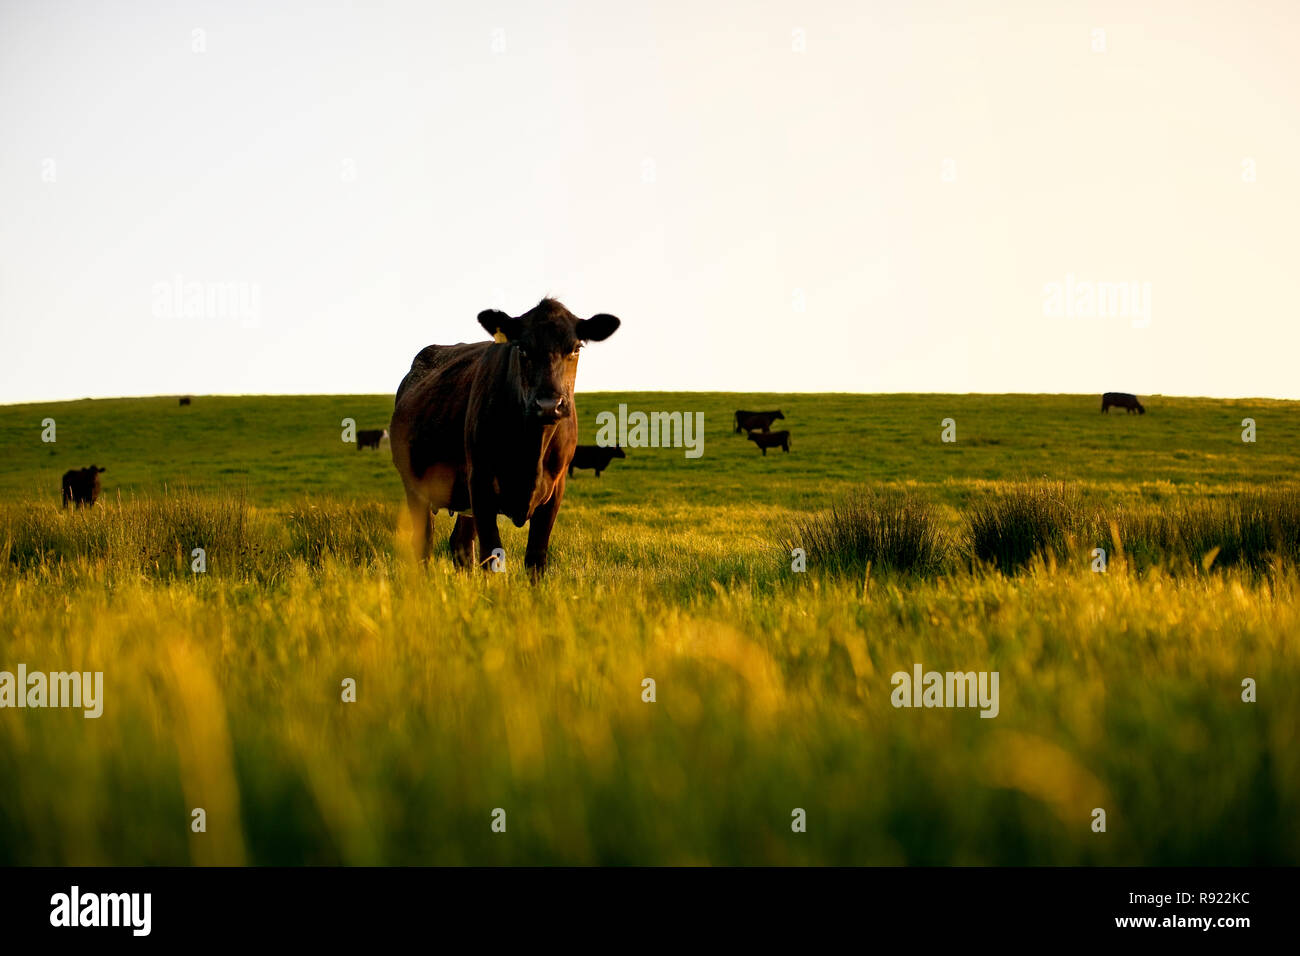 Cows standing in a grassy field. - Stock Image